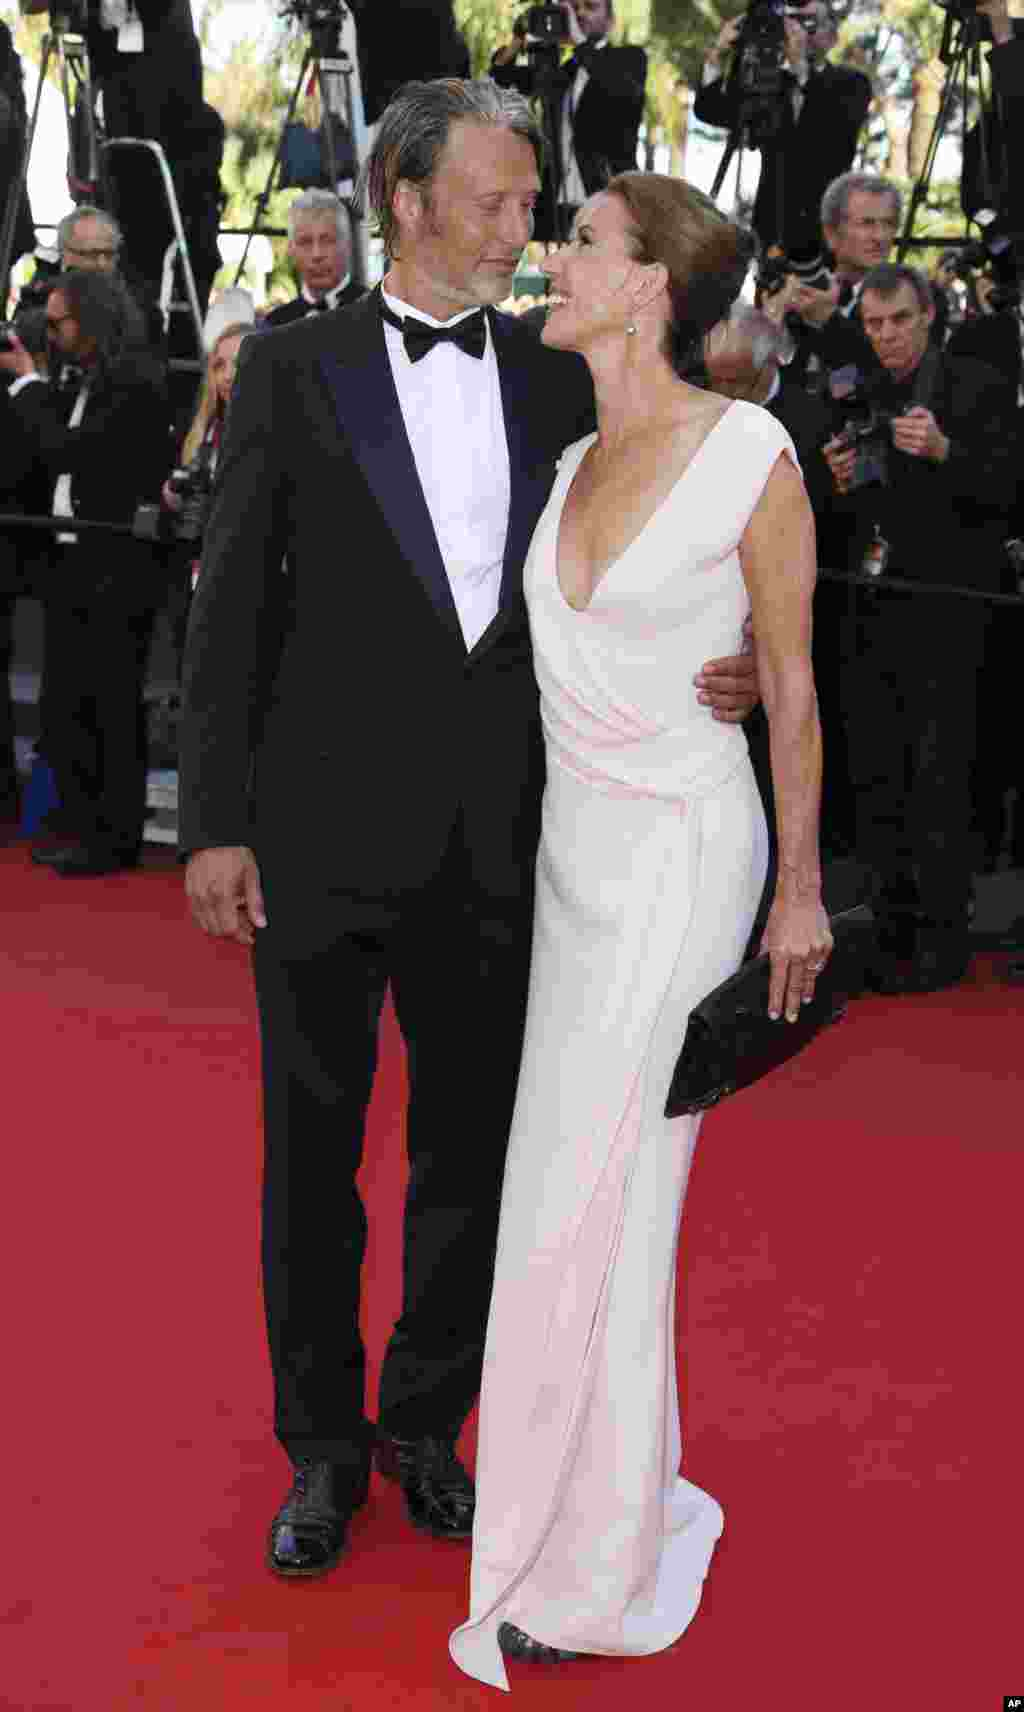 Actor Mads Mikkelsen and his wife Hanne Jacobsen arrive for the awards ceremony of the 66th Cannes Film Festival, May 26, 2013.